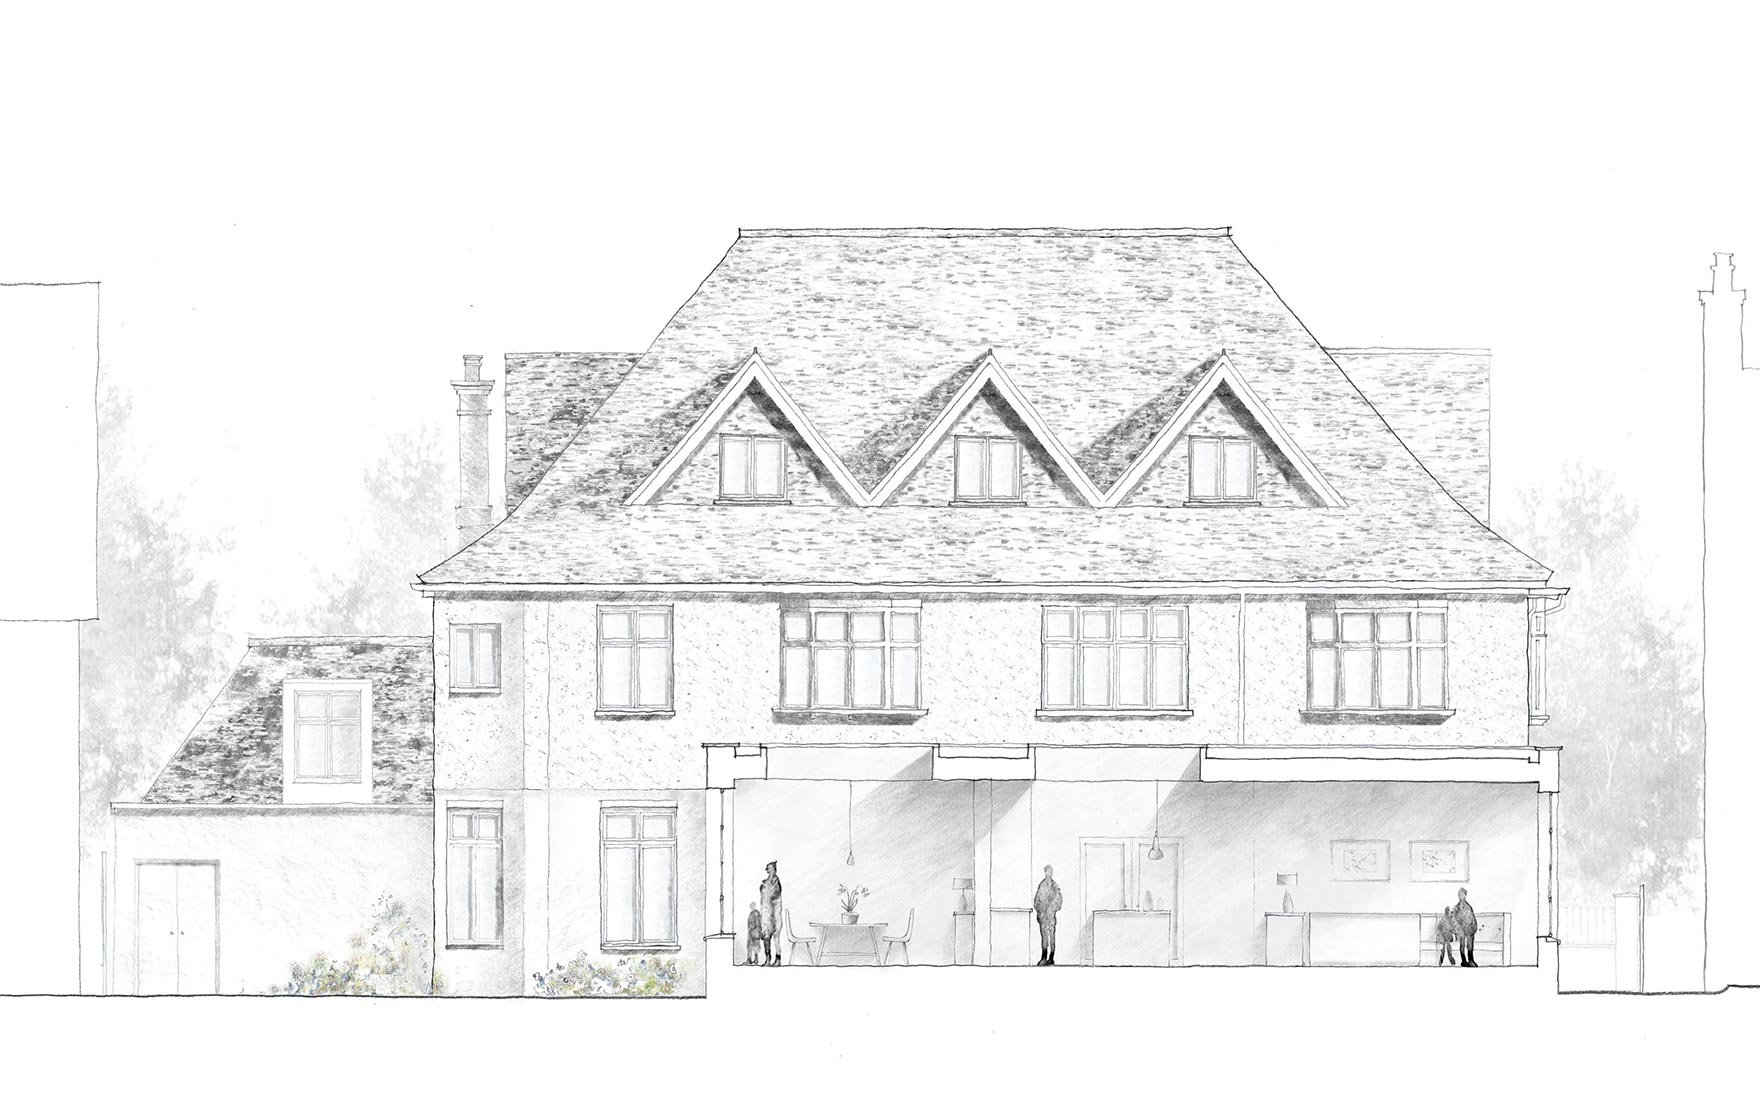 Wimbledon sketch showing the rear elevation and section